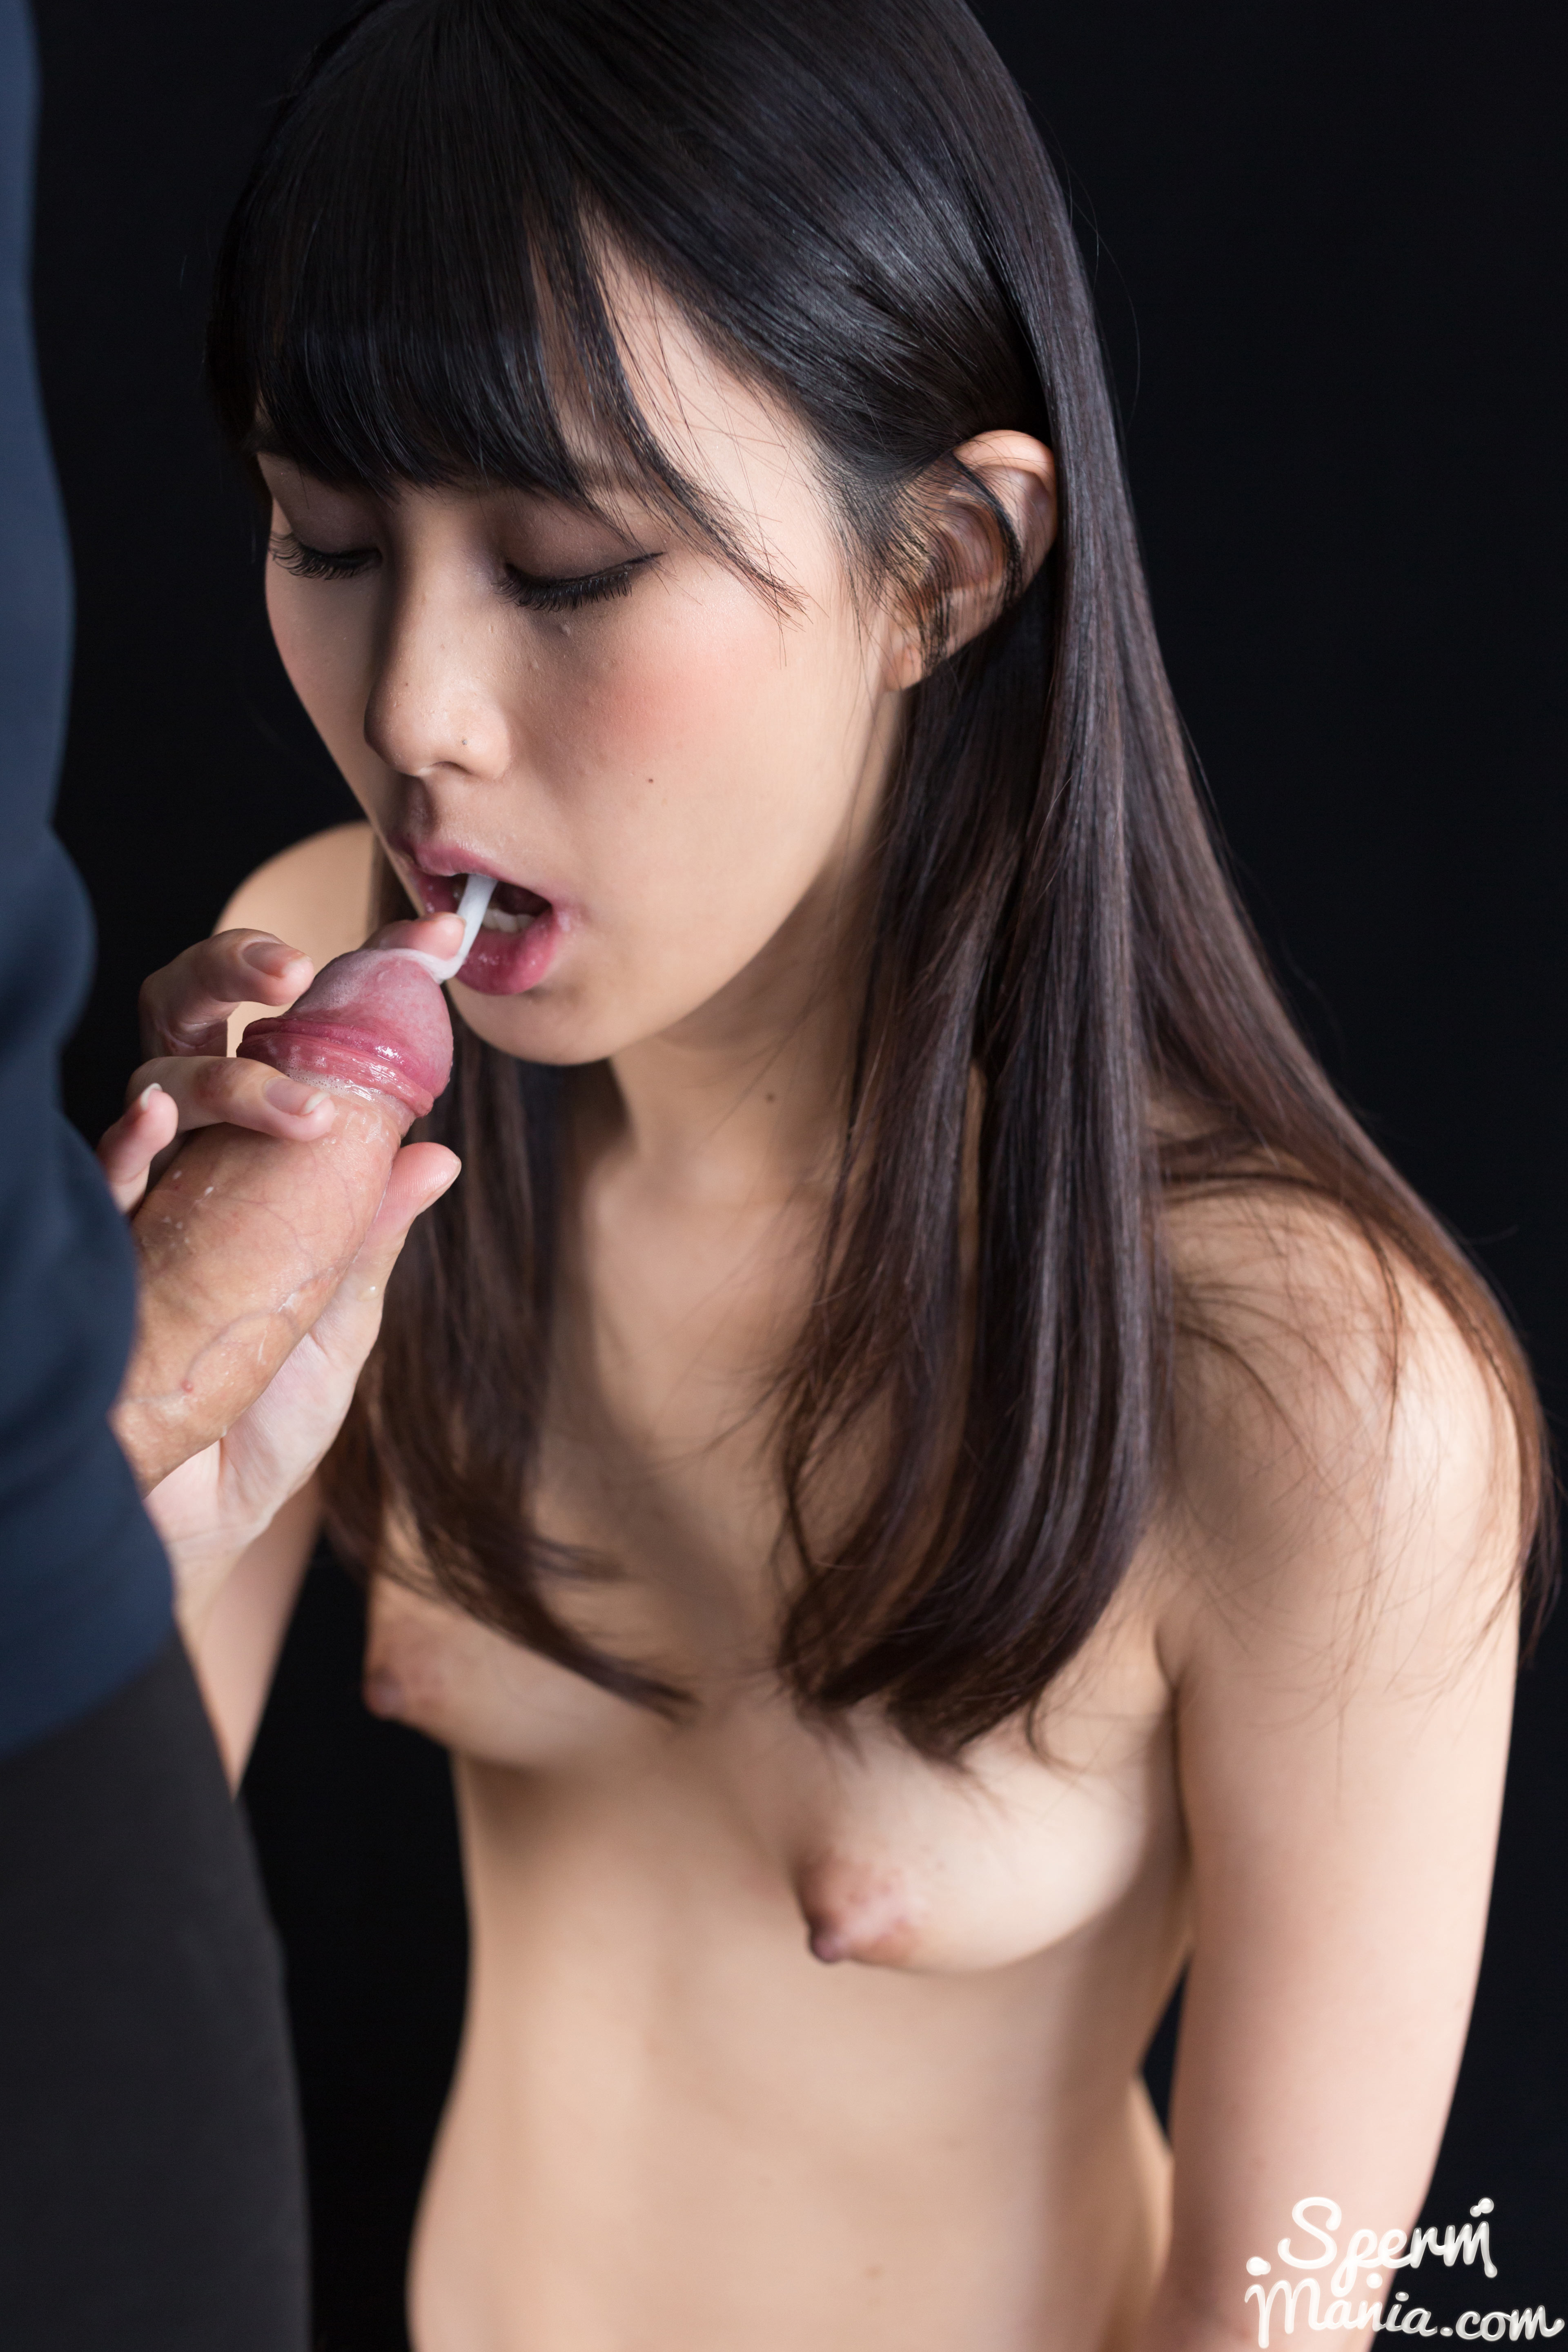 Japanese cum in mouth